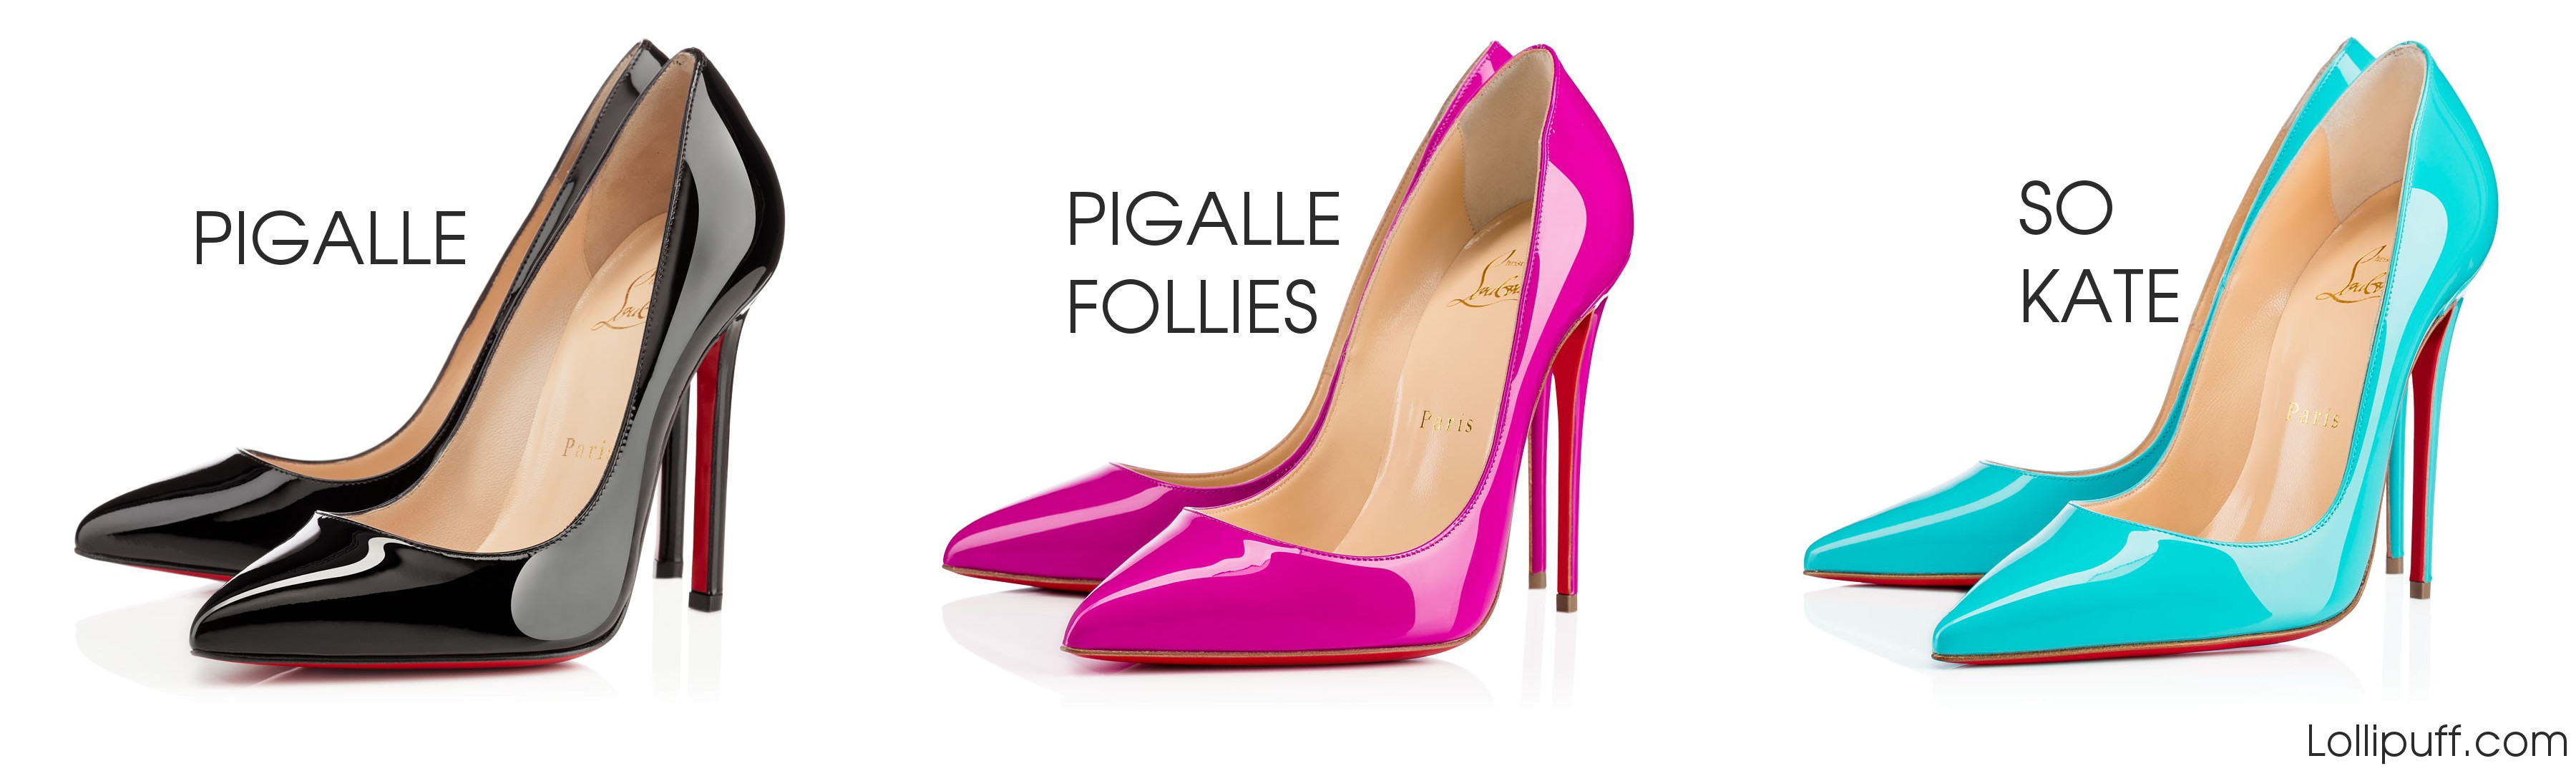 4c8d232fd6c Christian Louboutin Pigalle vs Pigalle Follies vs So Kate | Lollipuff